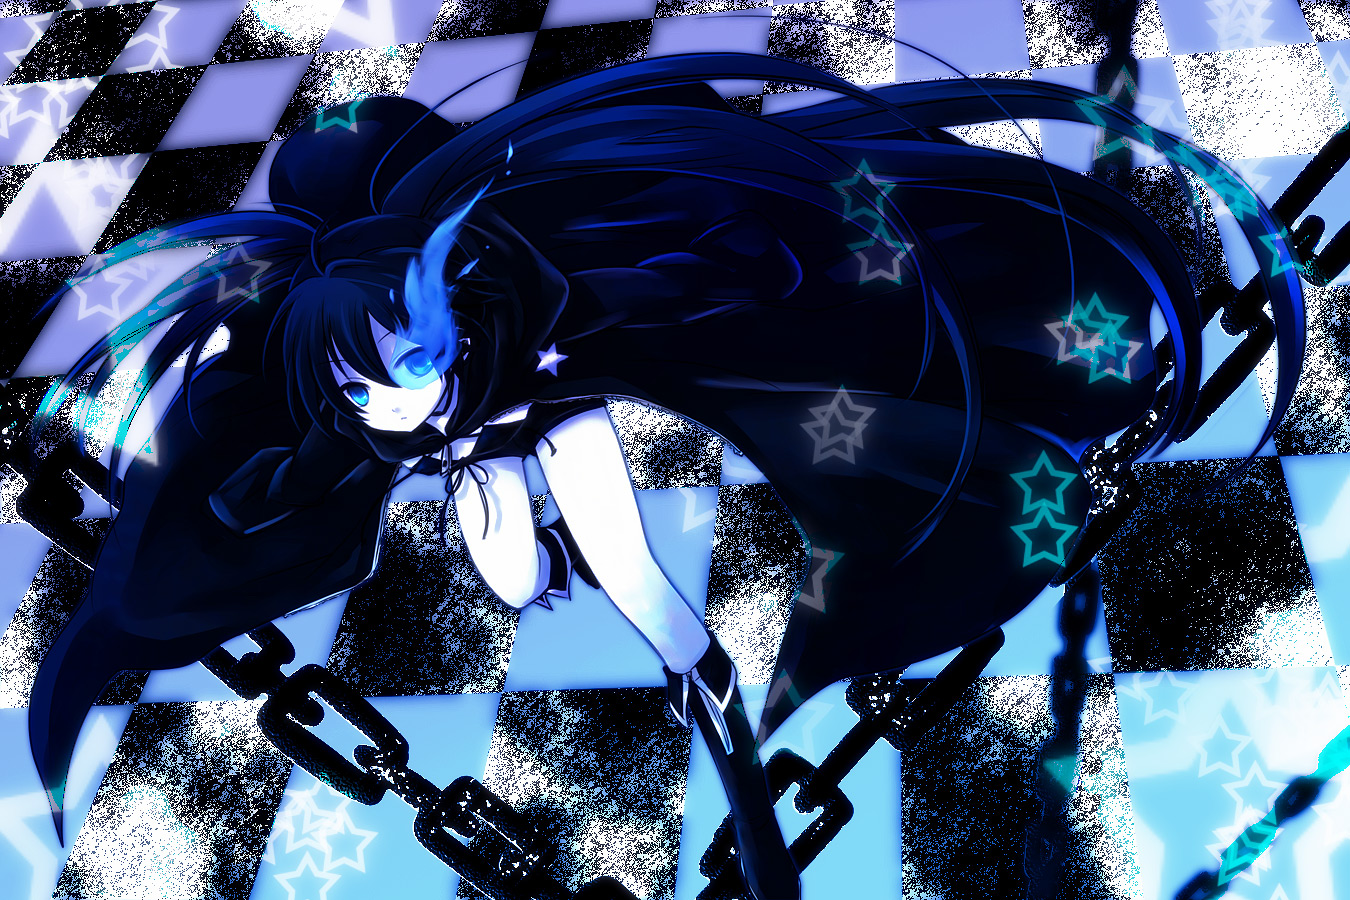 Cute Anime Girl Gun Wallpaper Black Rock Shooter Wallpapers Pack 16 04 12